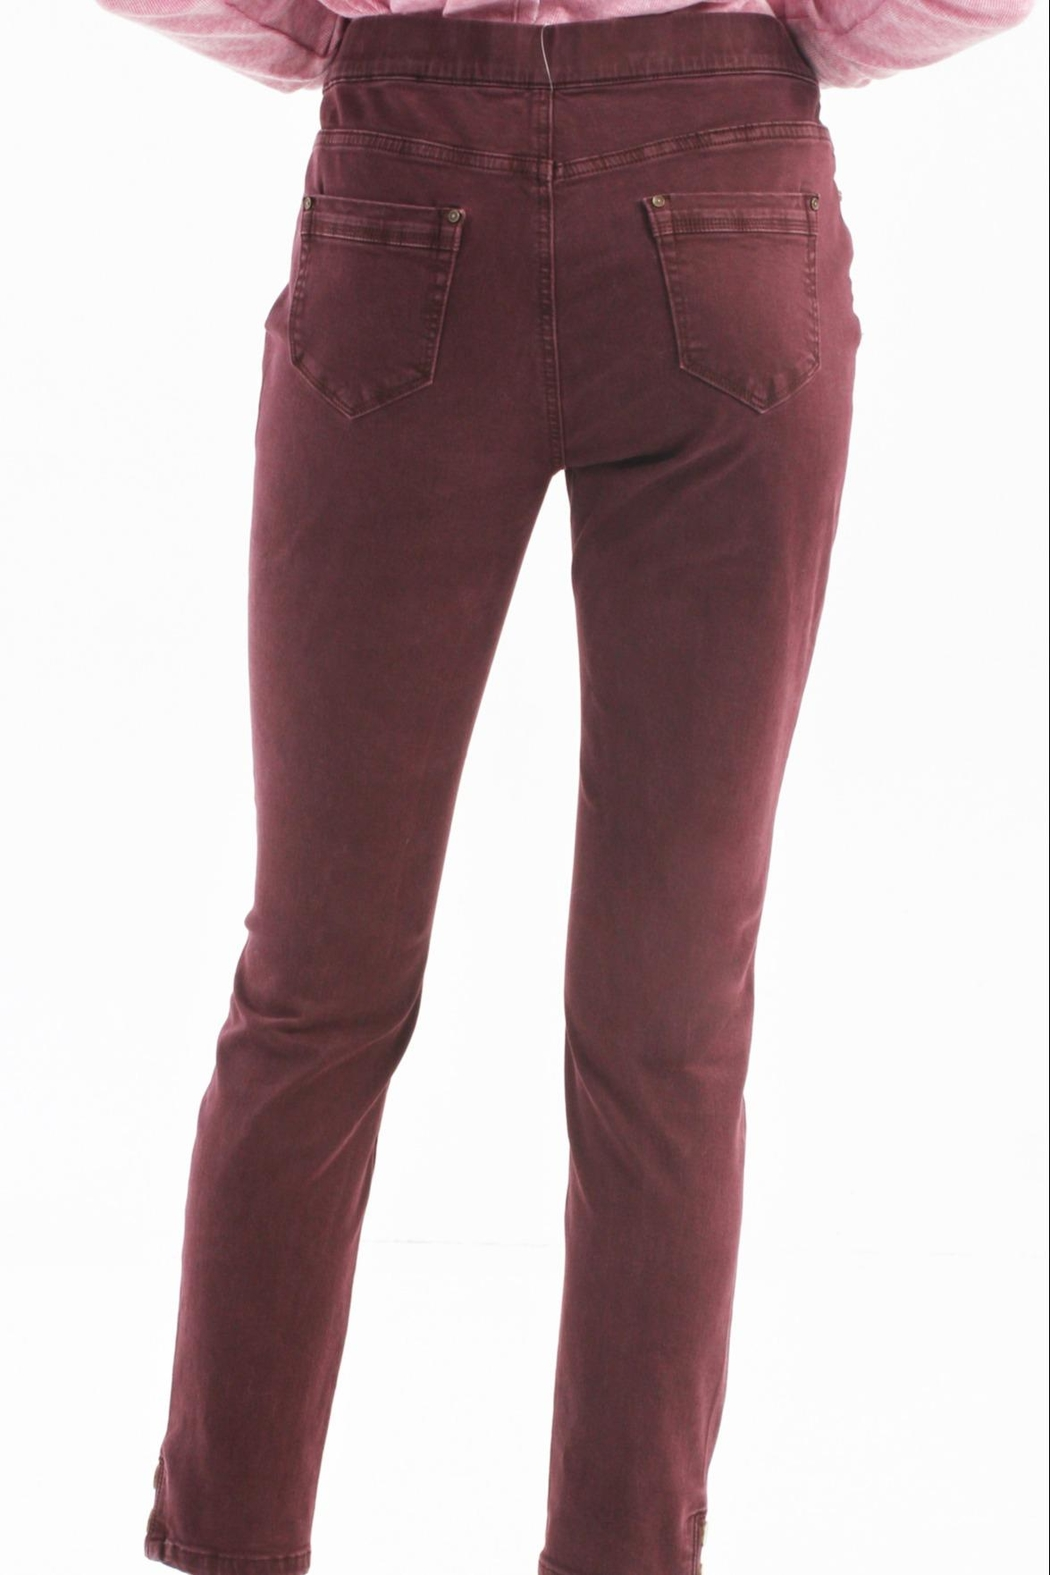 Charlie B. Raisin Pull On Jeans - Side Cropped Image